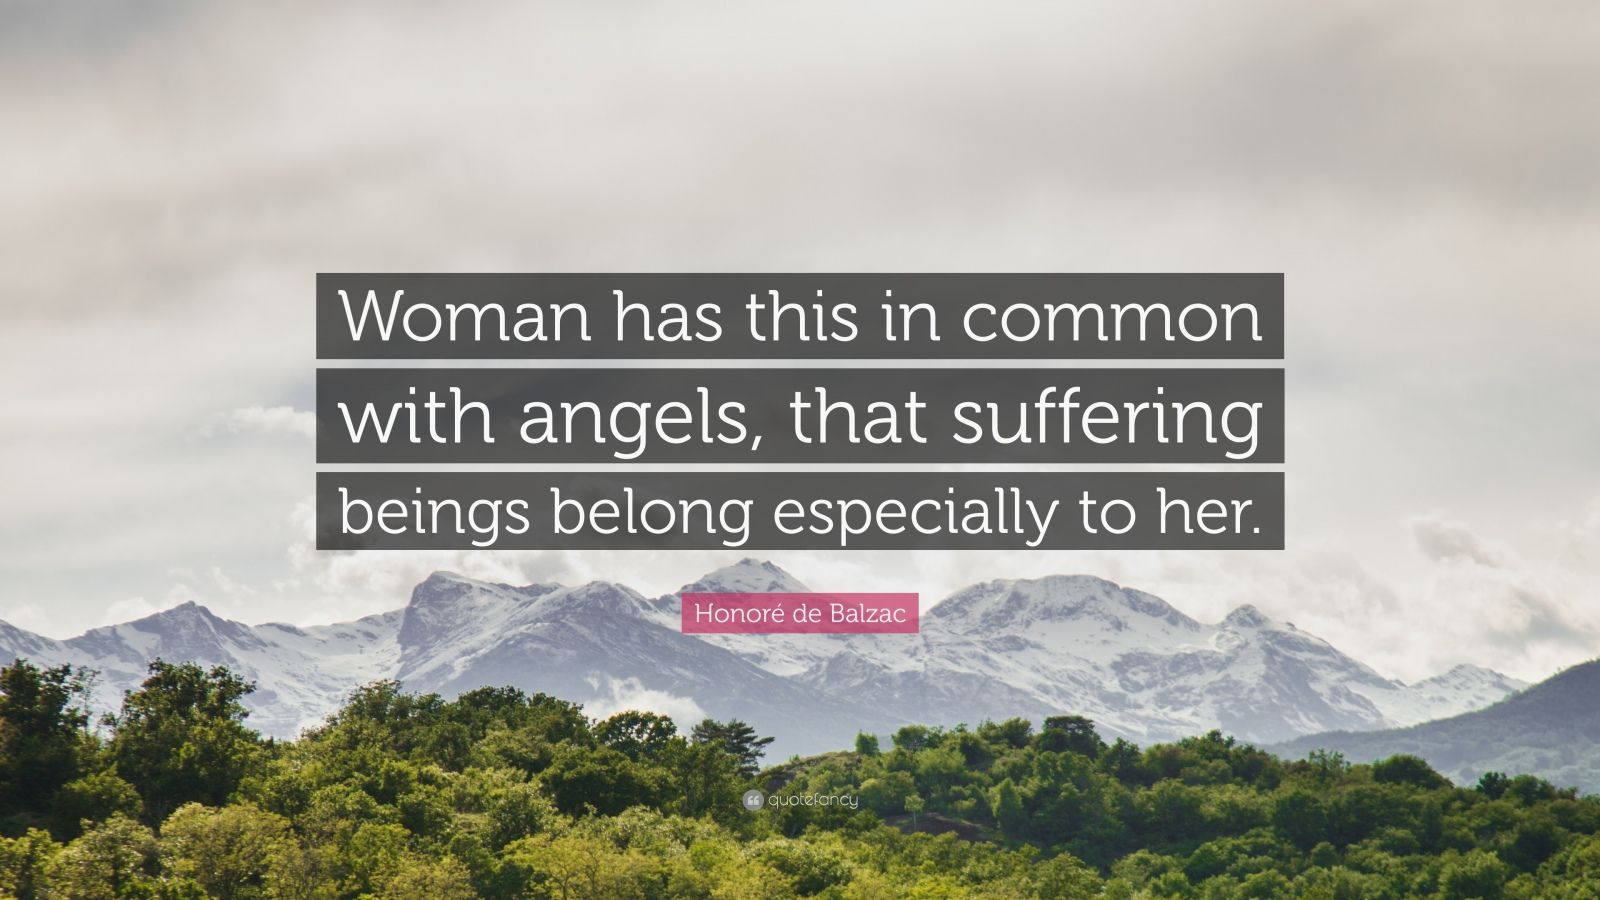 honoré de balzac quote woman has this in common with